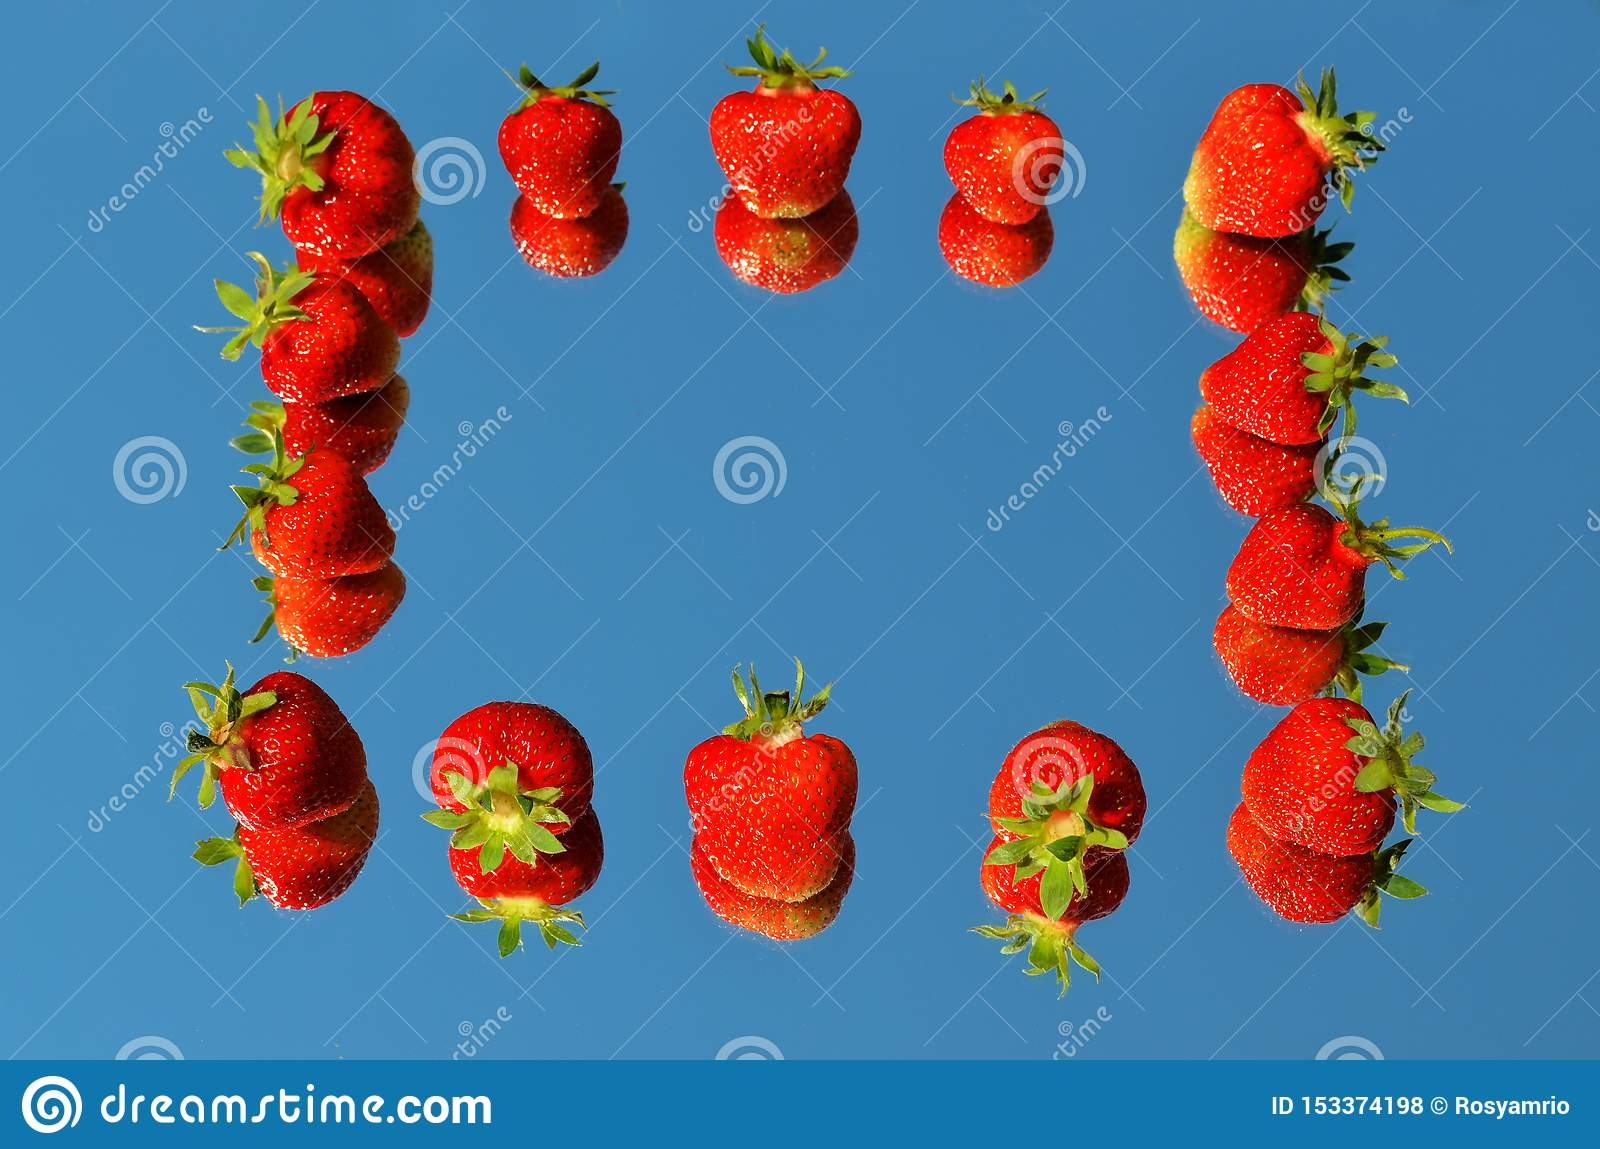 Red ripe strawberry berries laid on a mirror in the shape of a contour of a square with a reflection of the blue sky